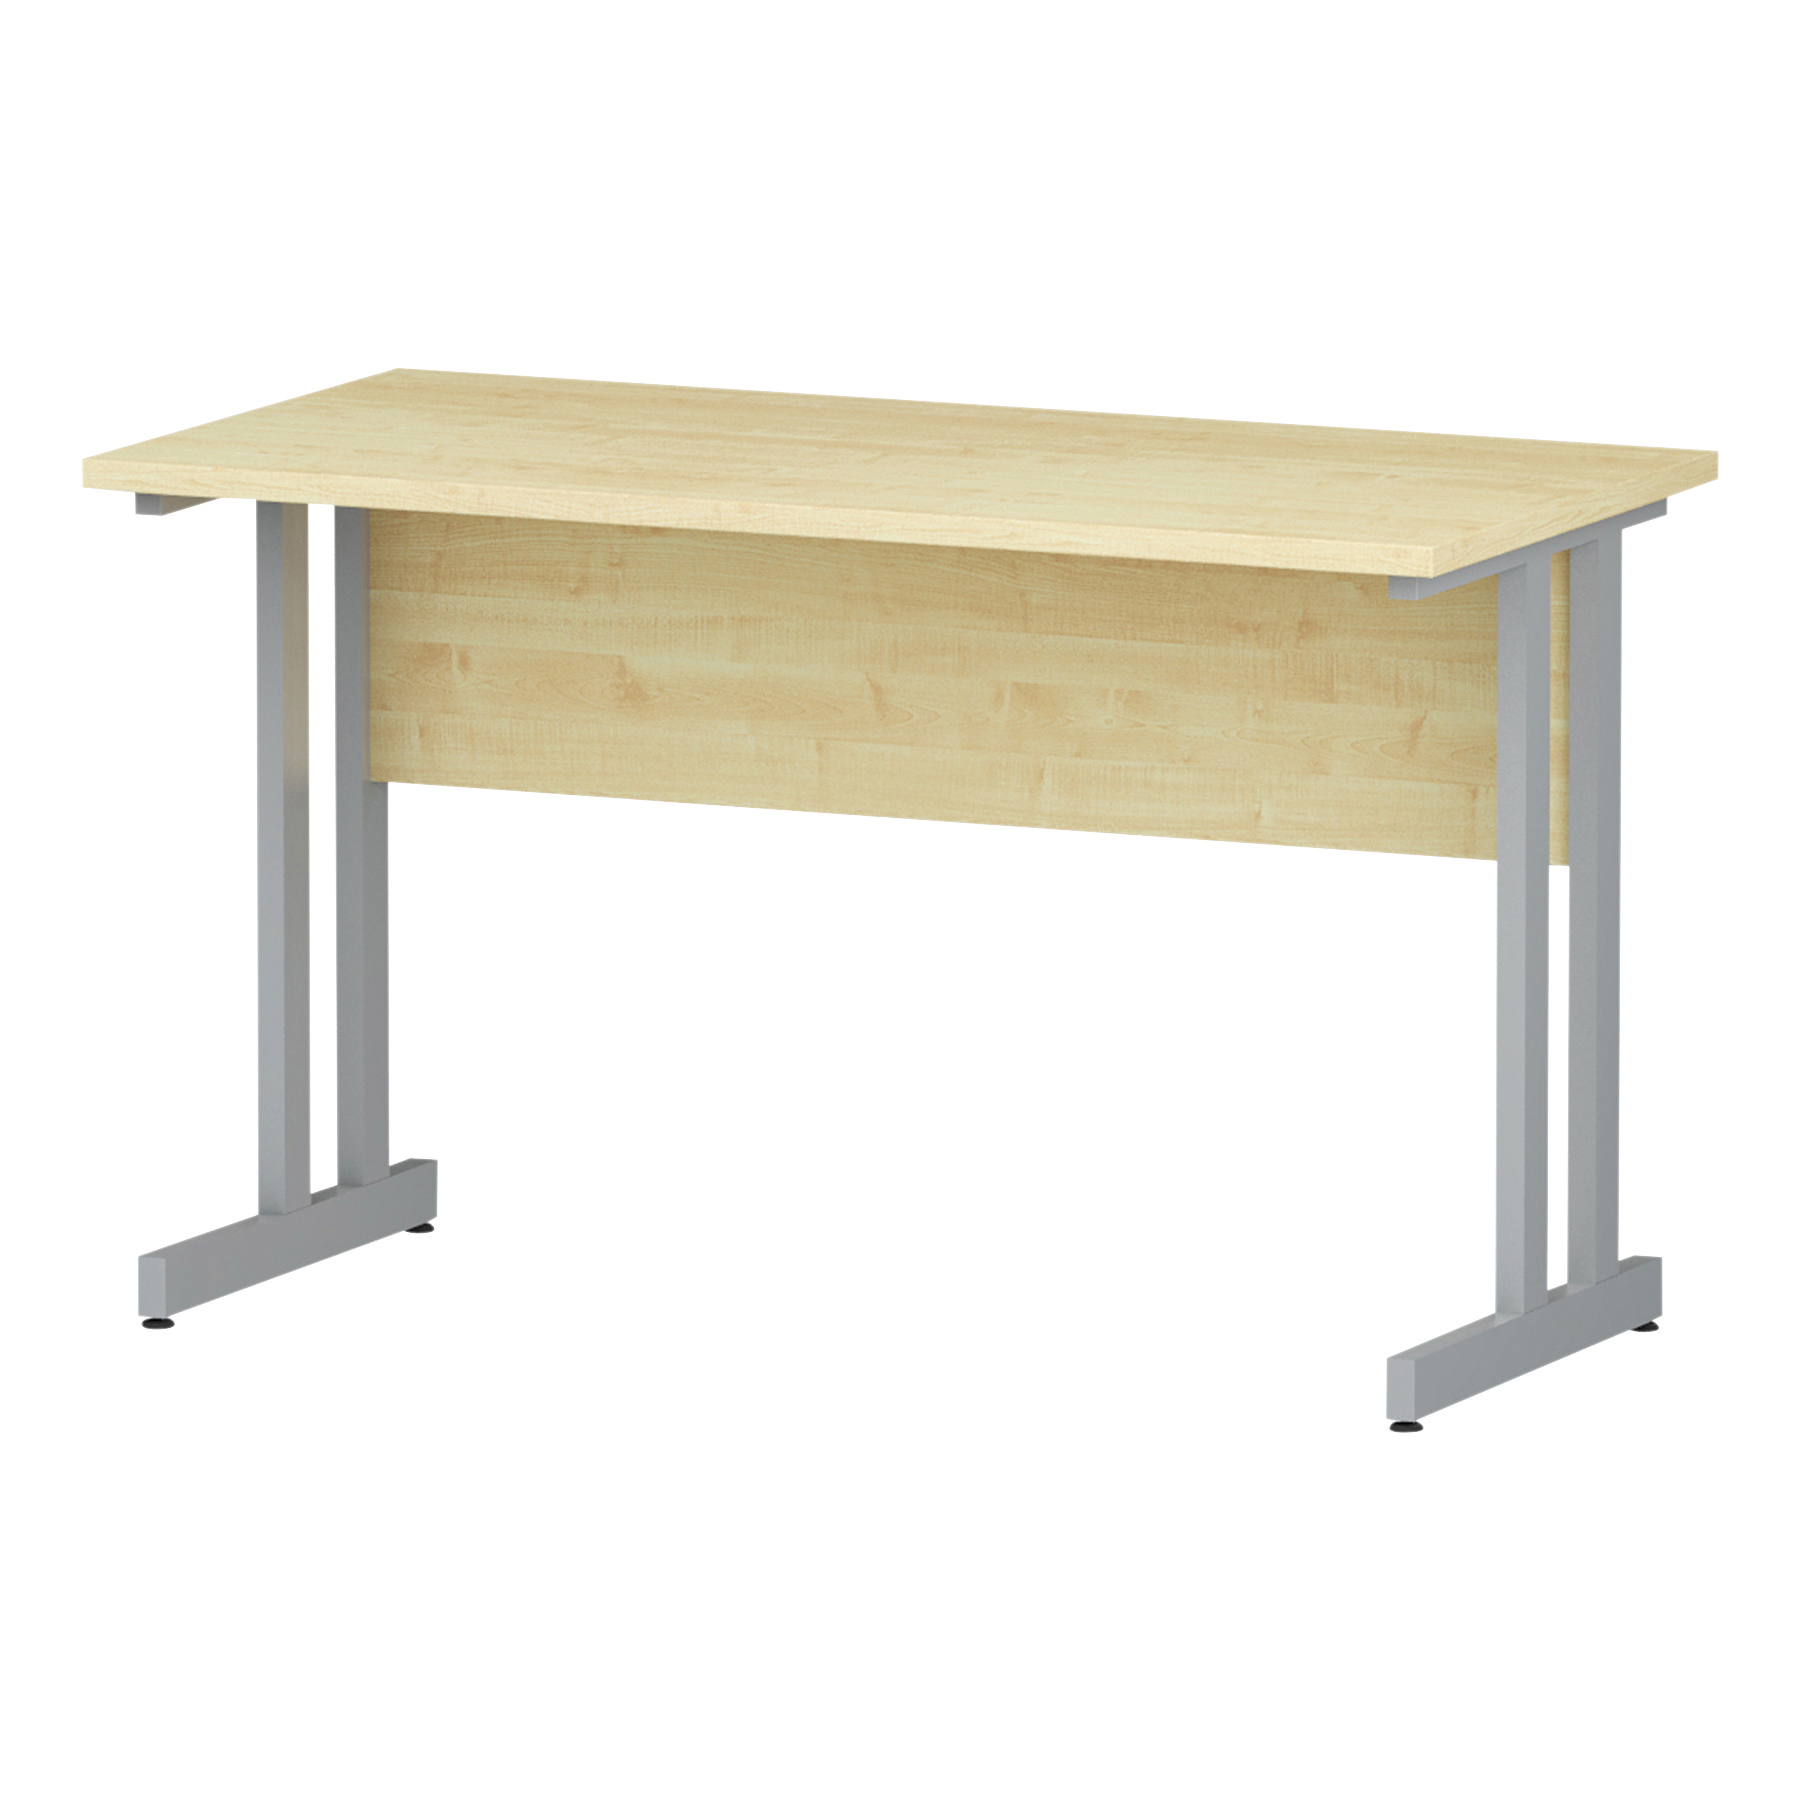 Trexus Rectangular Slim Desk Silver Cantilever Leg 1200x600mm Maple Ref I002422